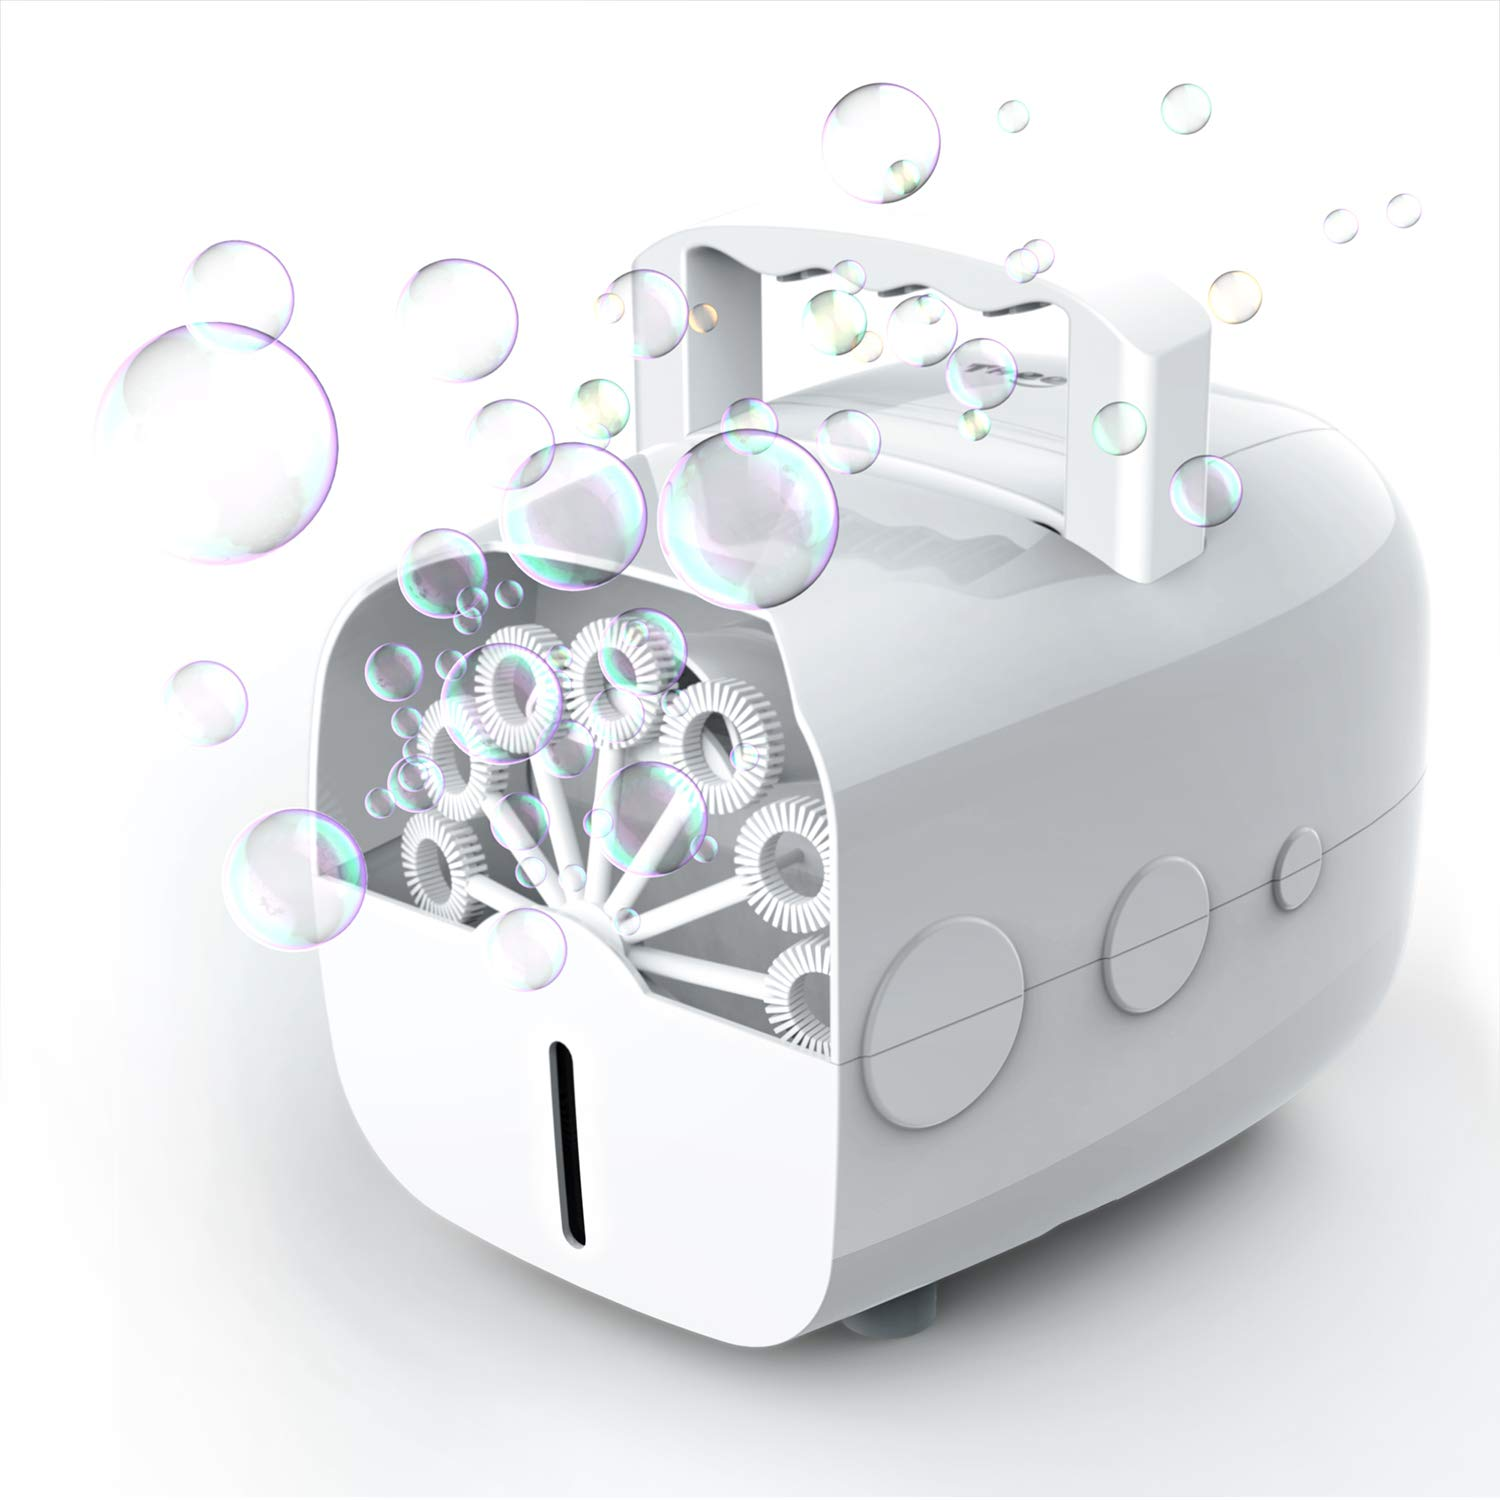 Theefun Portable Automatic Bubble Machine for Kids, Plug-in or Batteries Powered Bubble Blower for Outdoor/Indoor Use